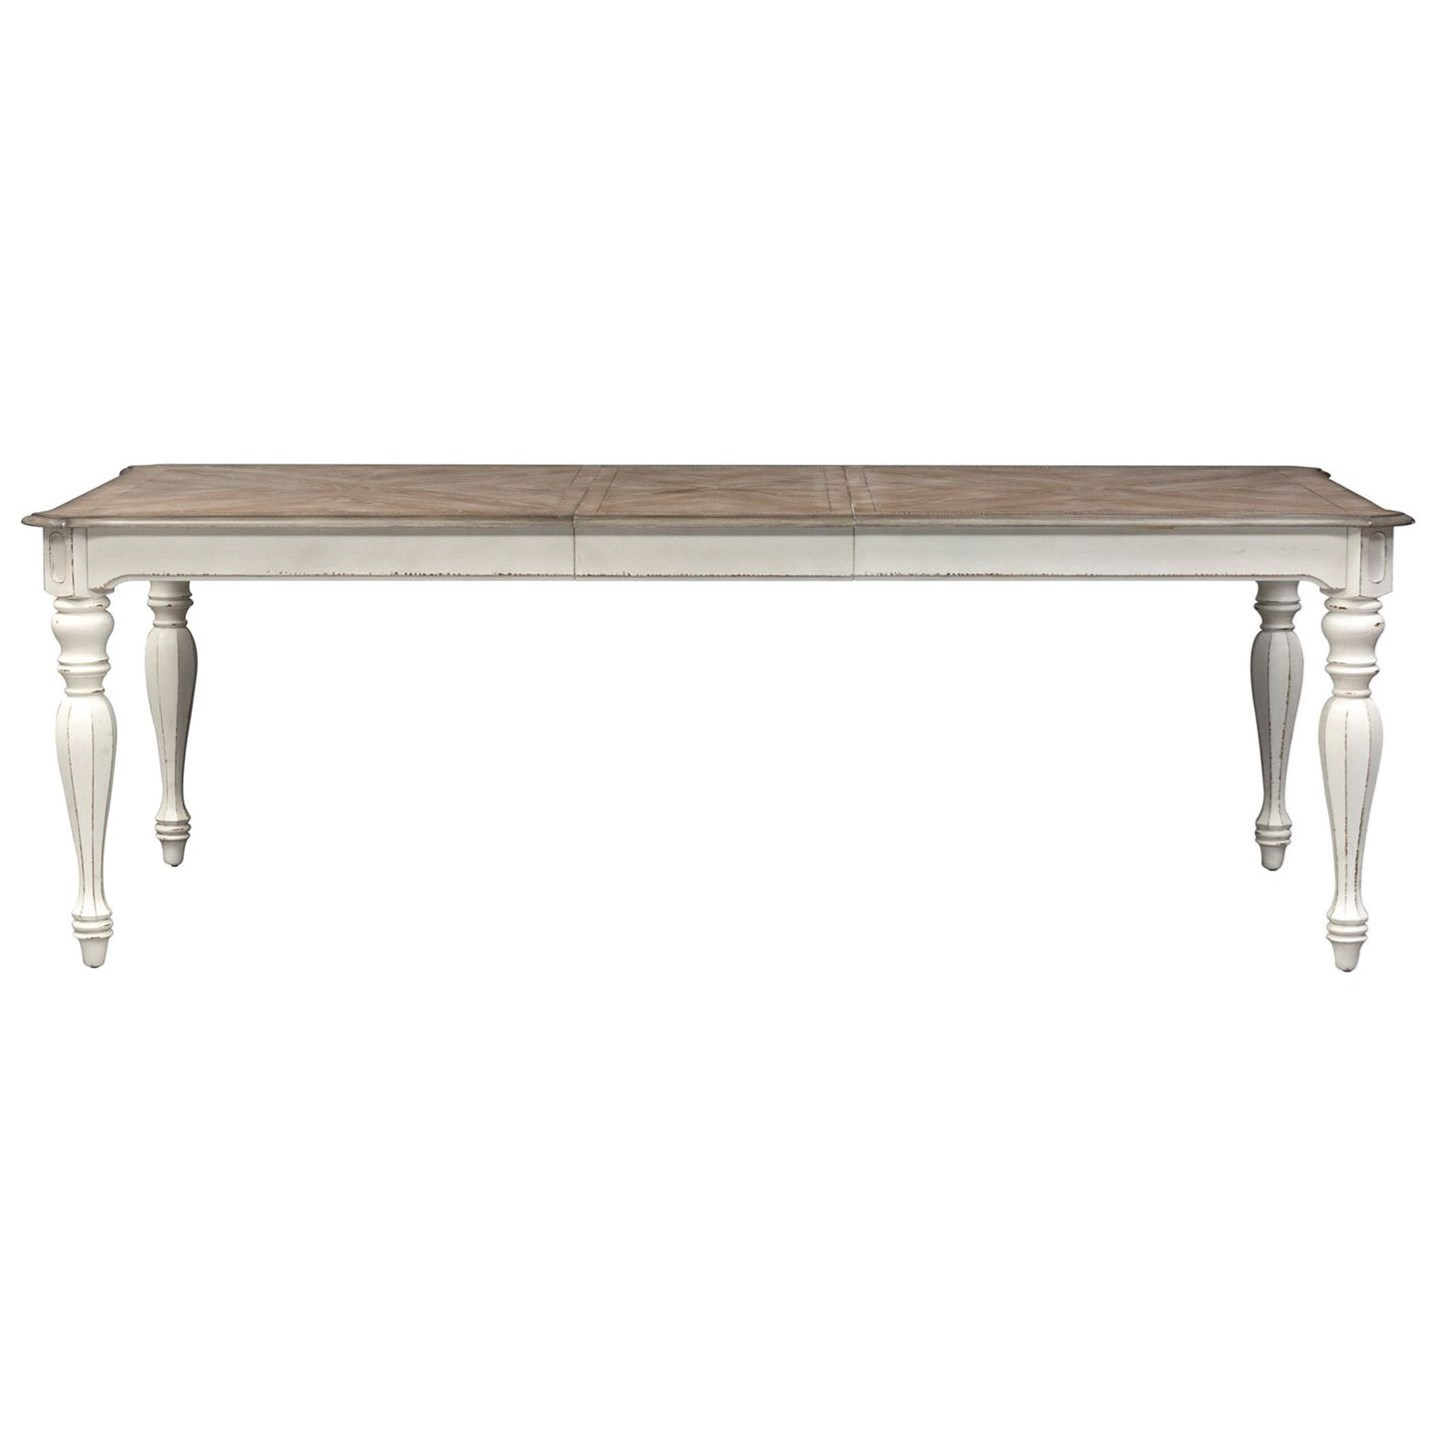 Morgan Rectangular Leg Table with Leaf by Libby at Walker's Furniture